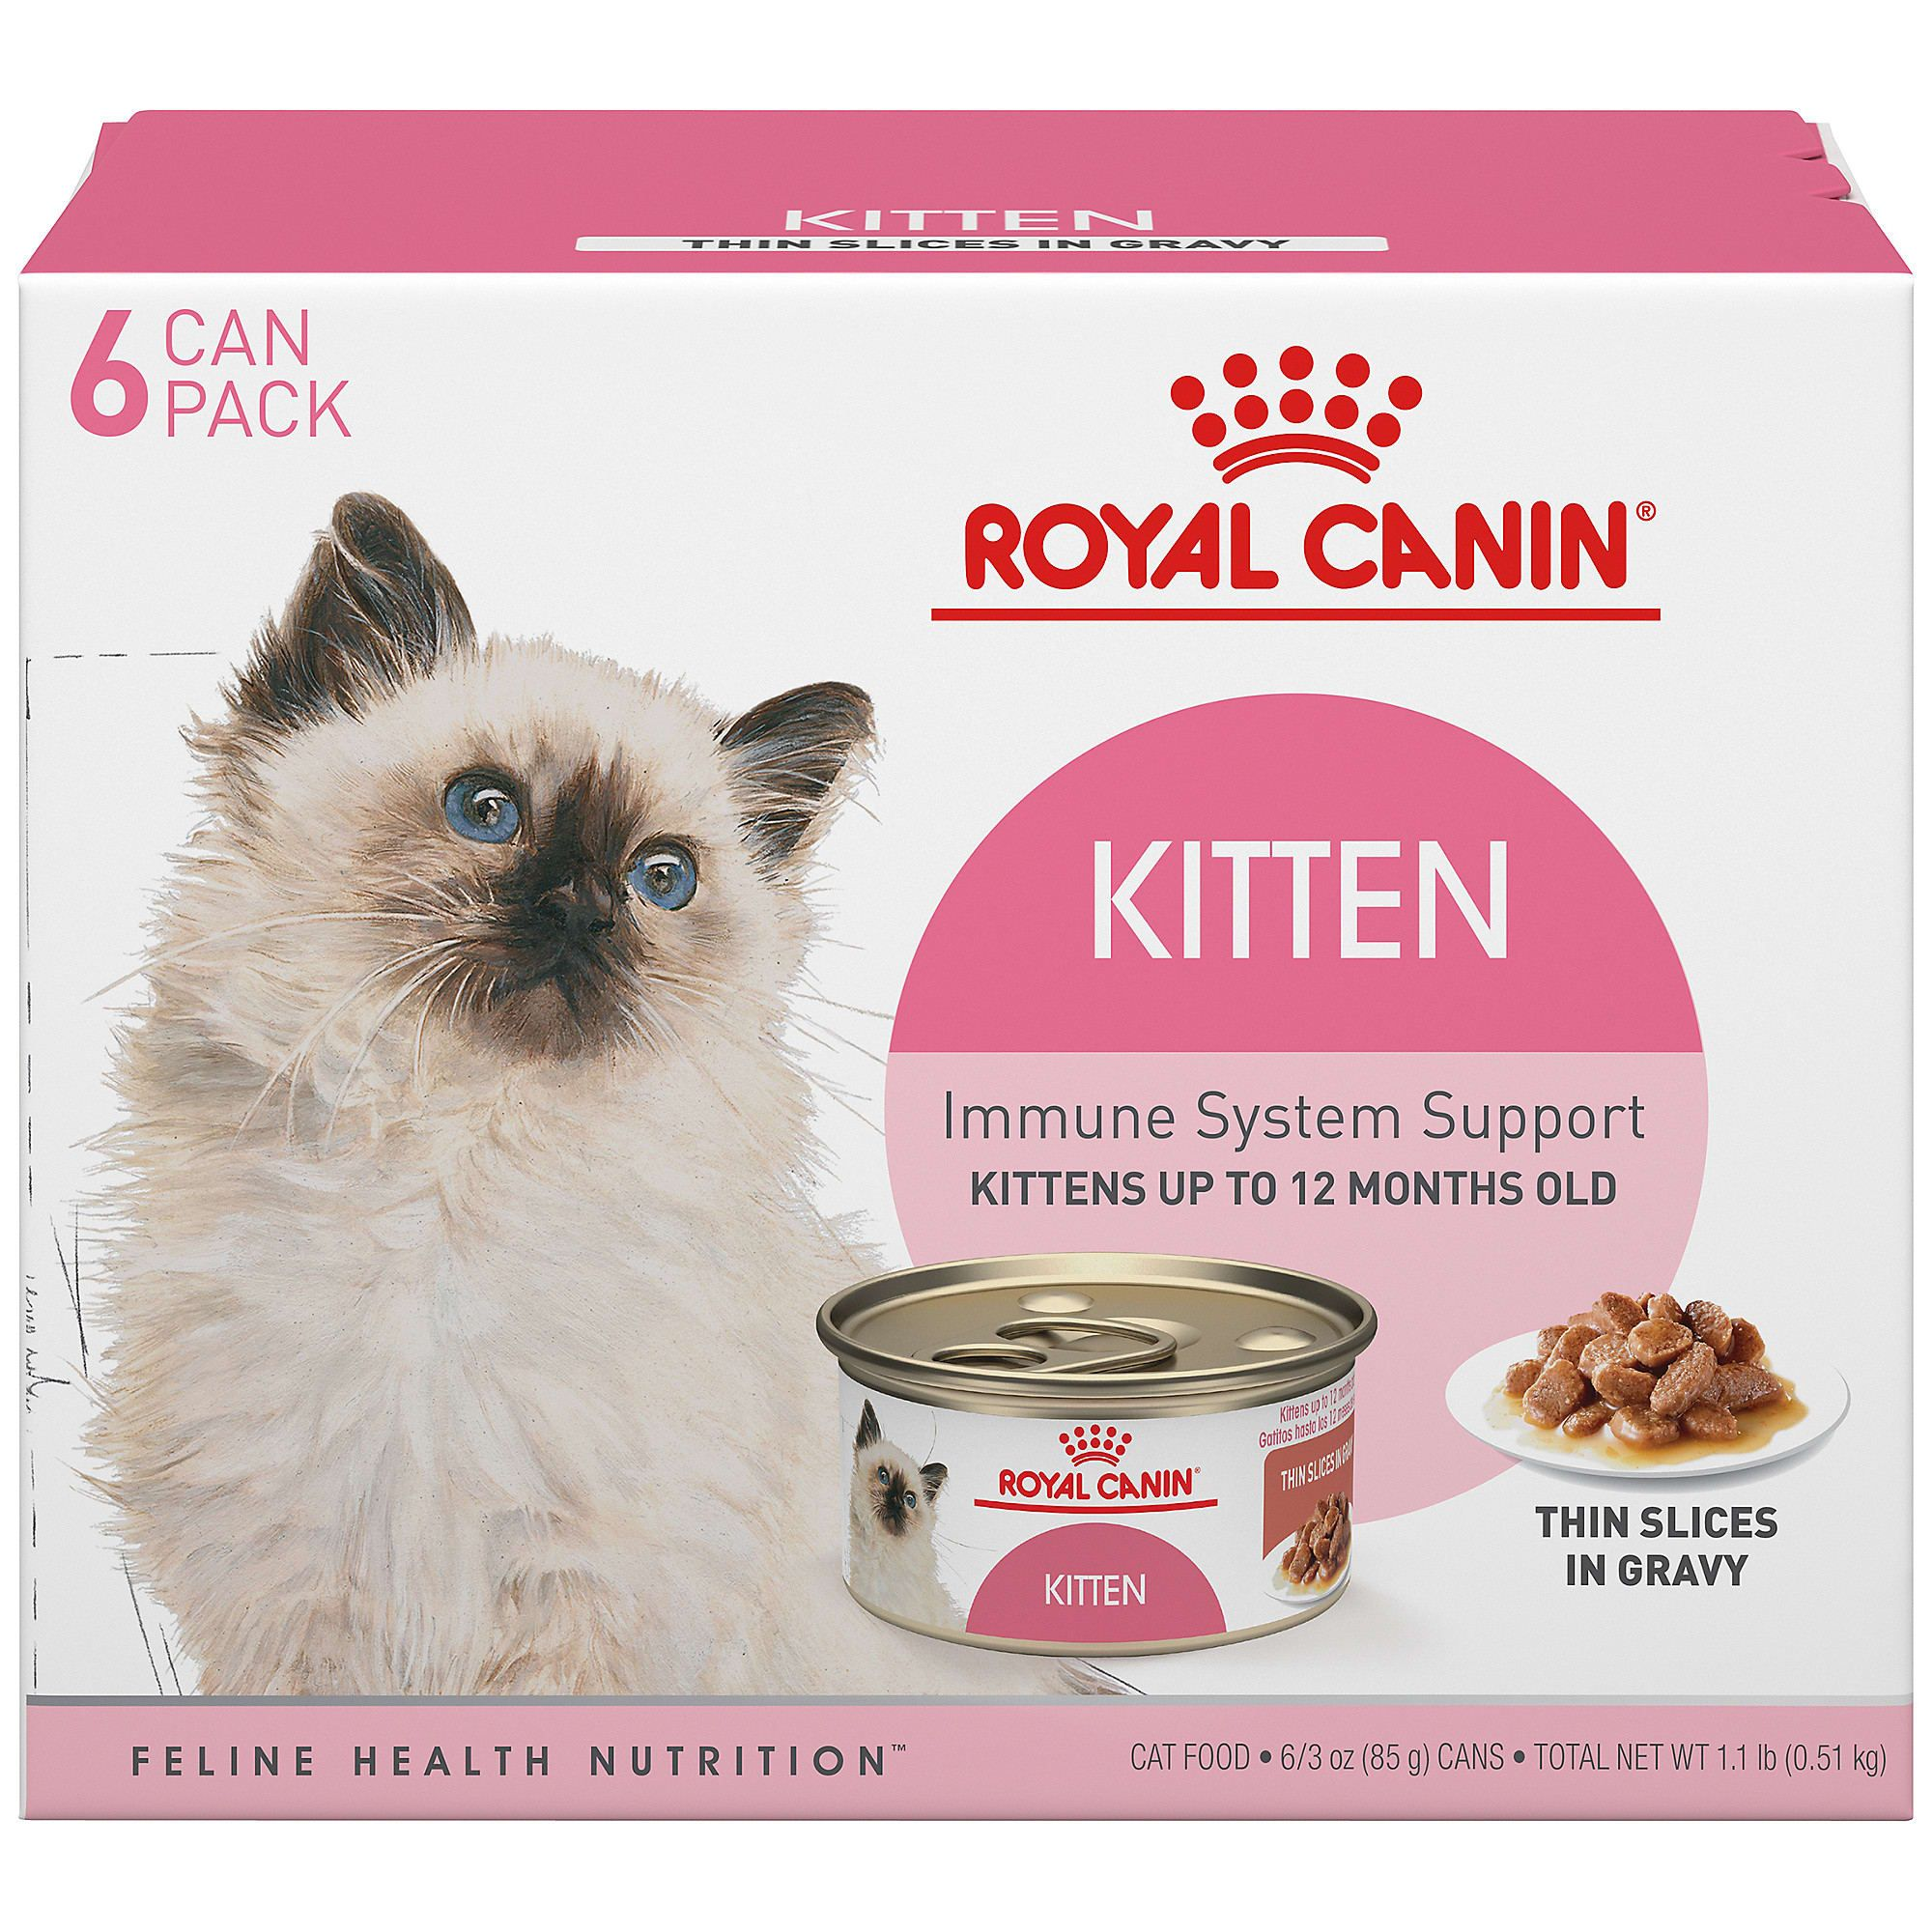 Royal Canin Feline Health Nutrition Thin Slices In Gravy Variety Pack Wet Kitten Food 3 Oz Count Of 6 Petco In 2020 Feline Health Health And Nutrition Kitten Food